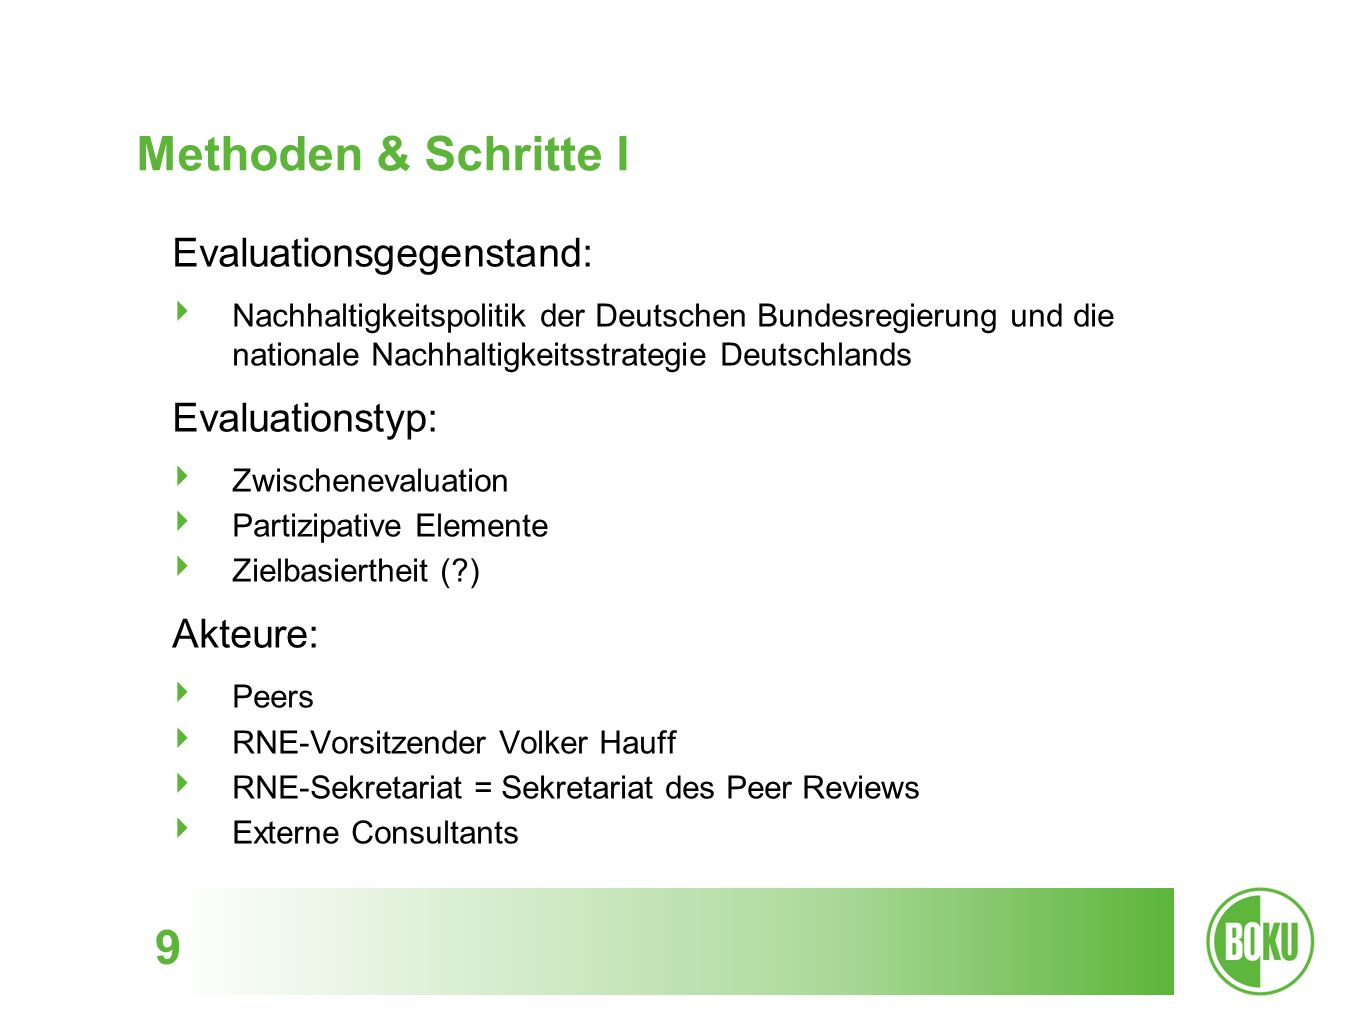 Methoden & Schritte I Evaluationsgegenstand: Evaluationstyp: Akteure: